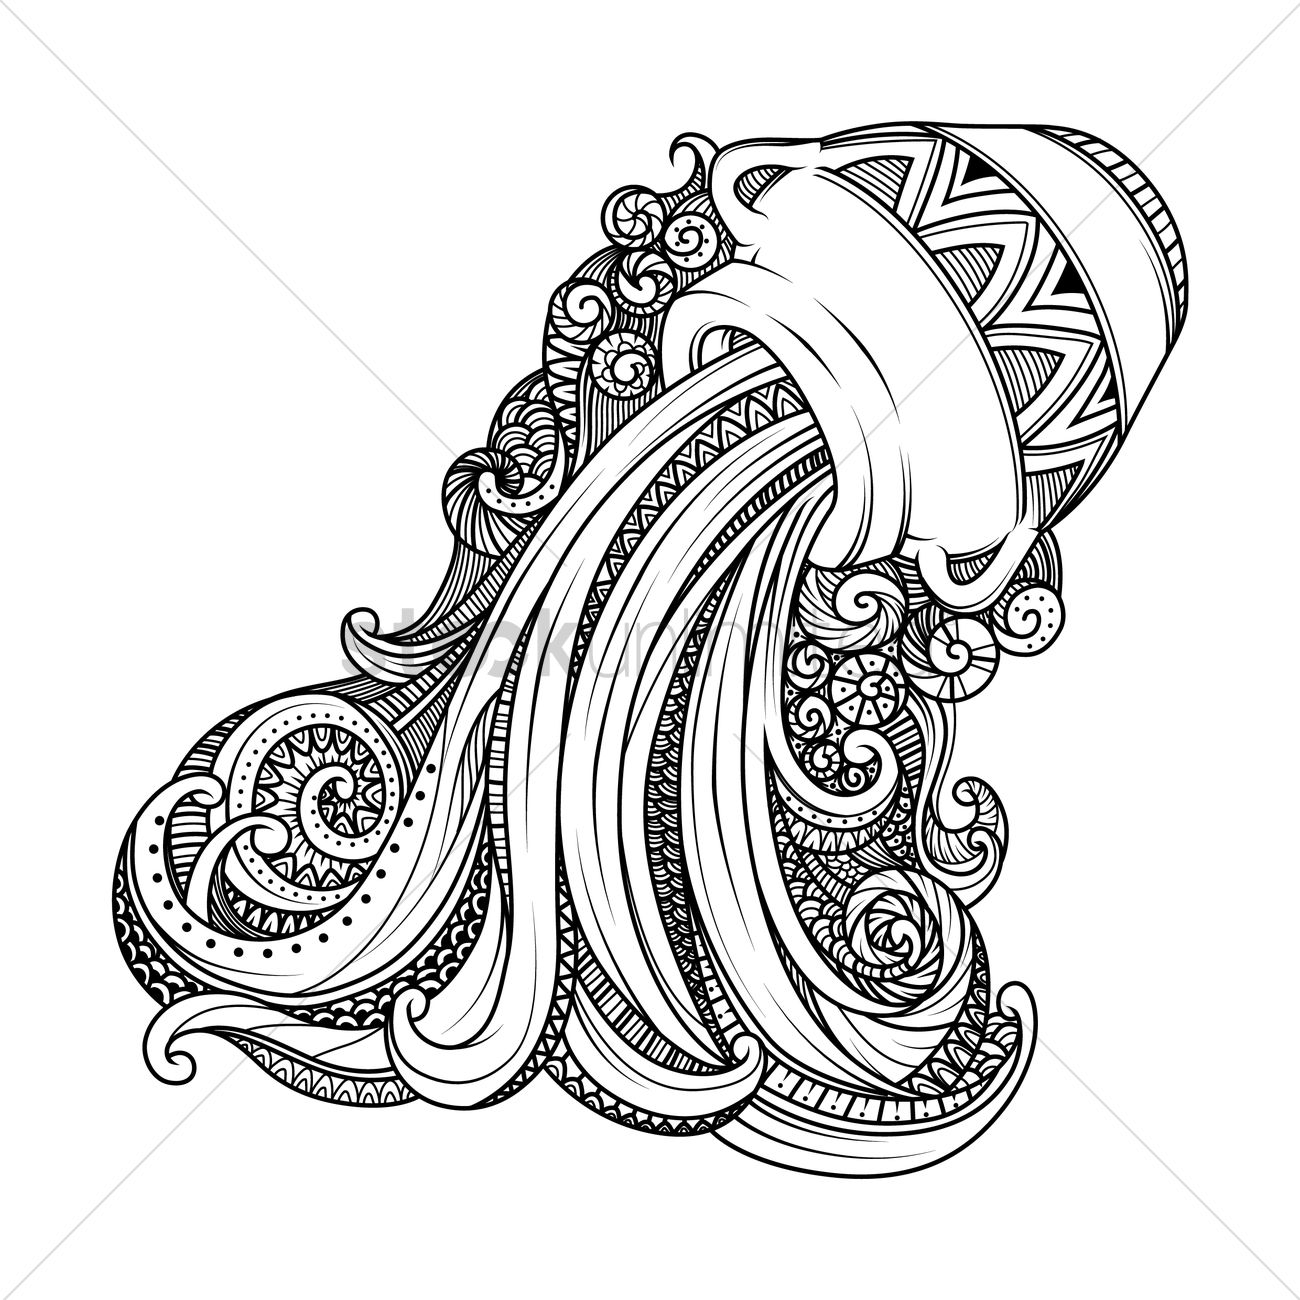 aquarius zodiac intricate design vector image 1987896 stockunlimited